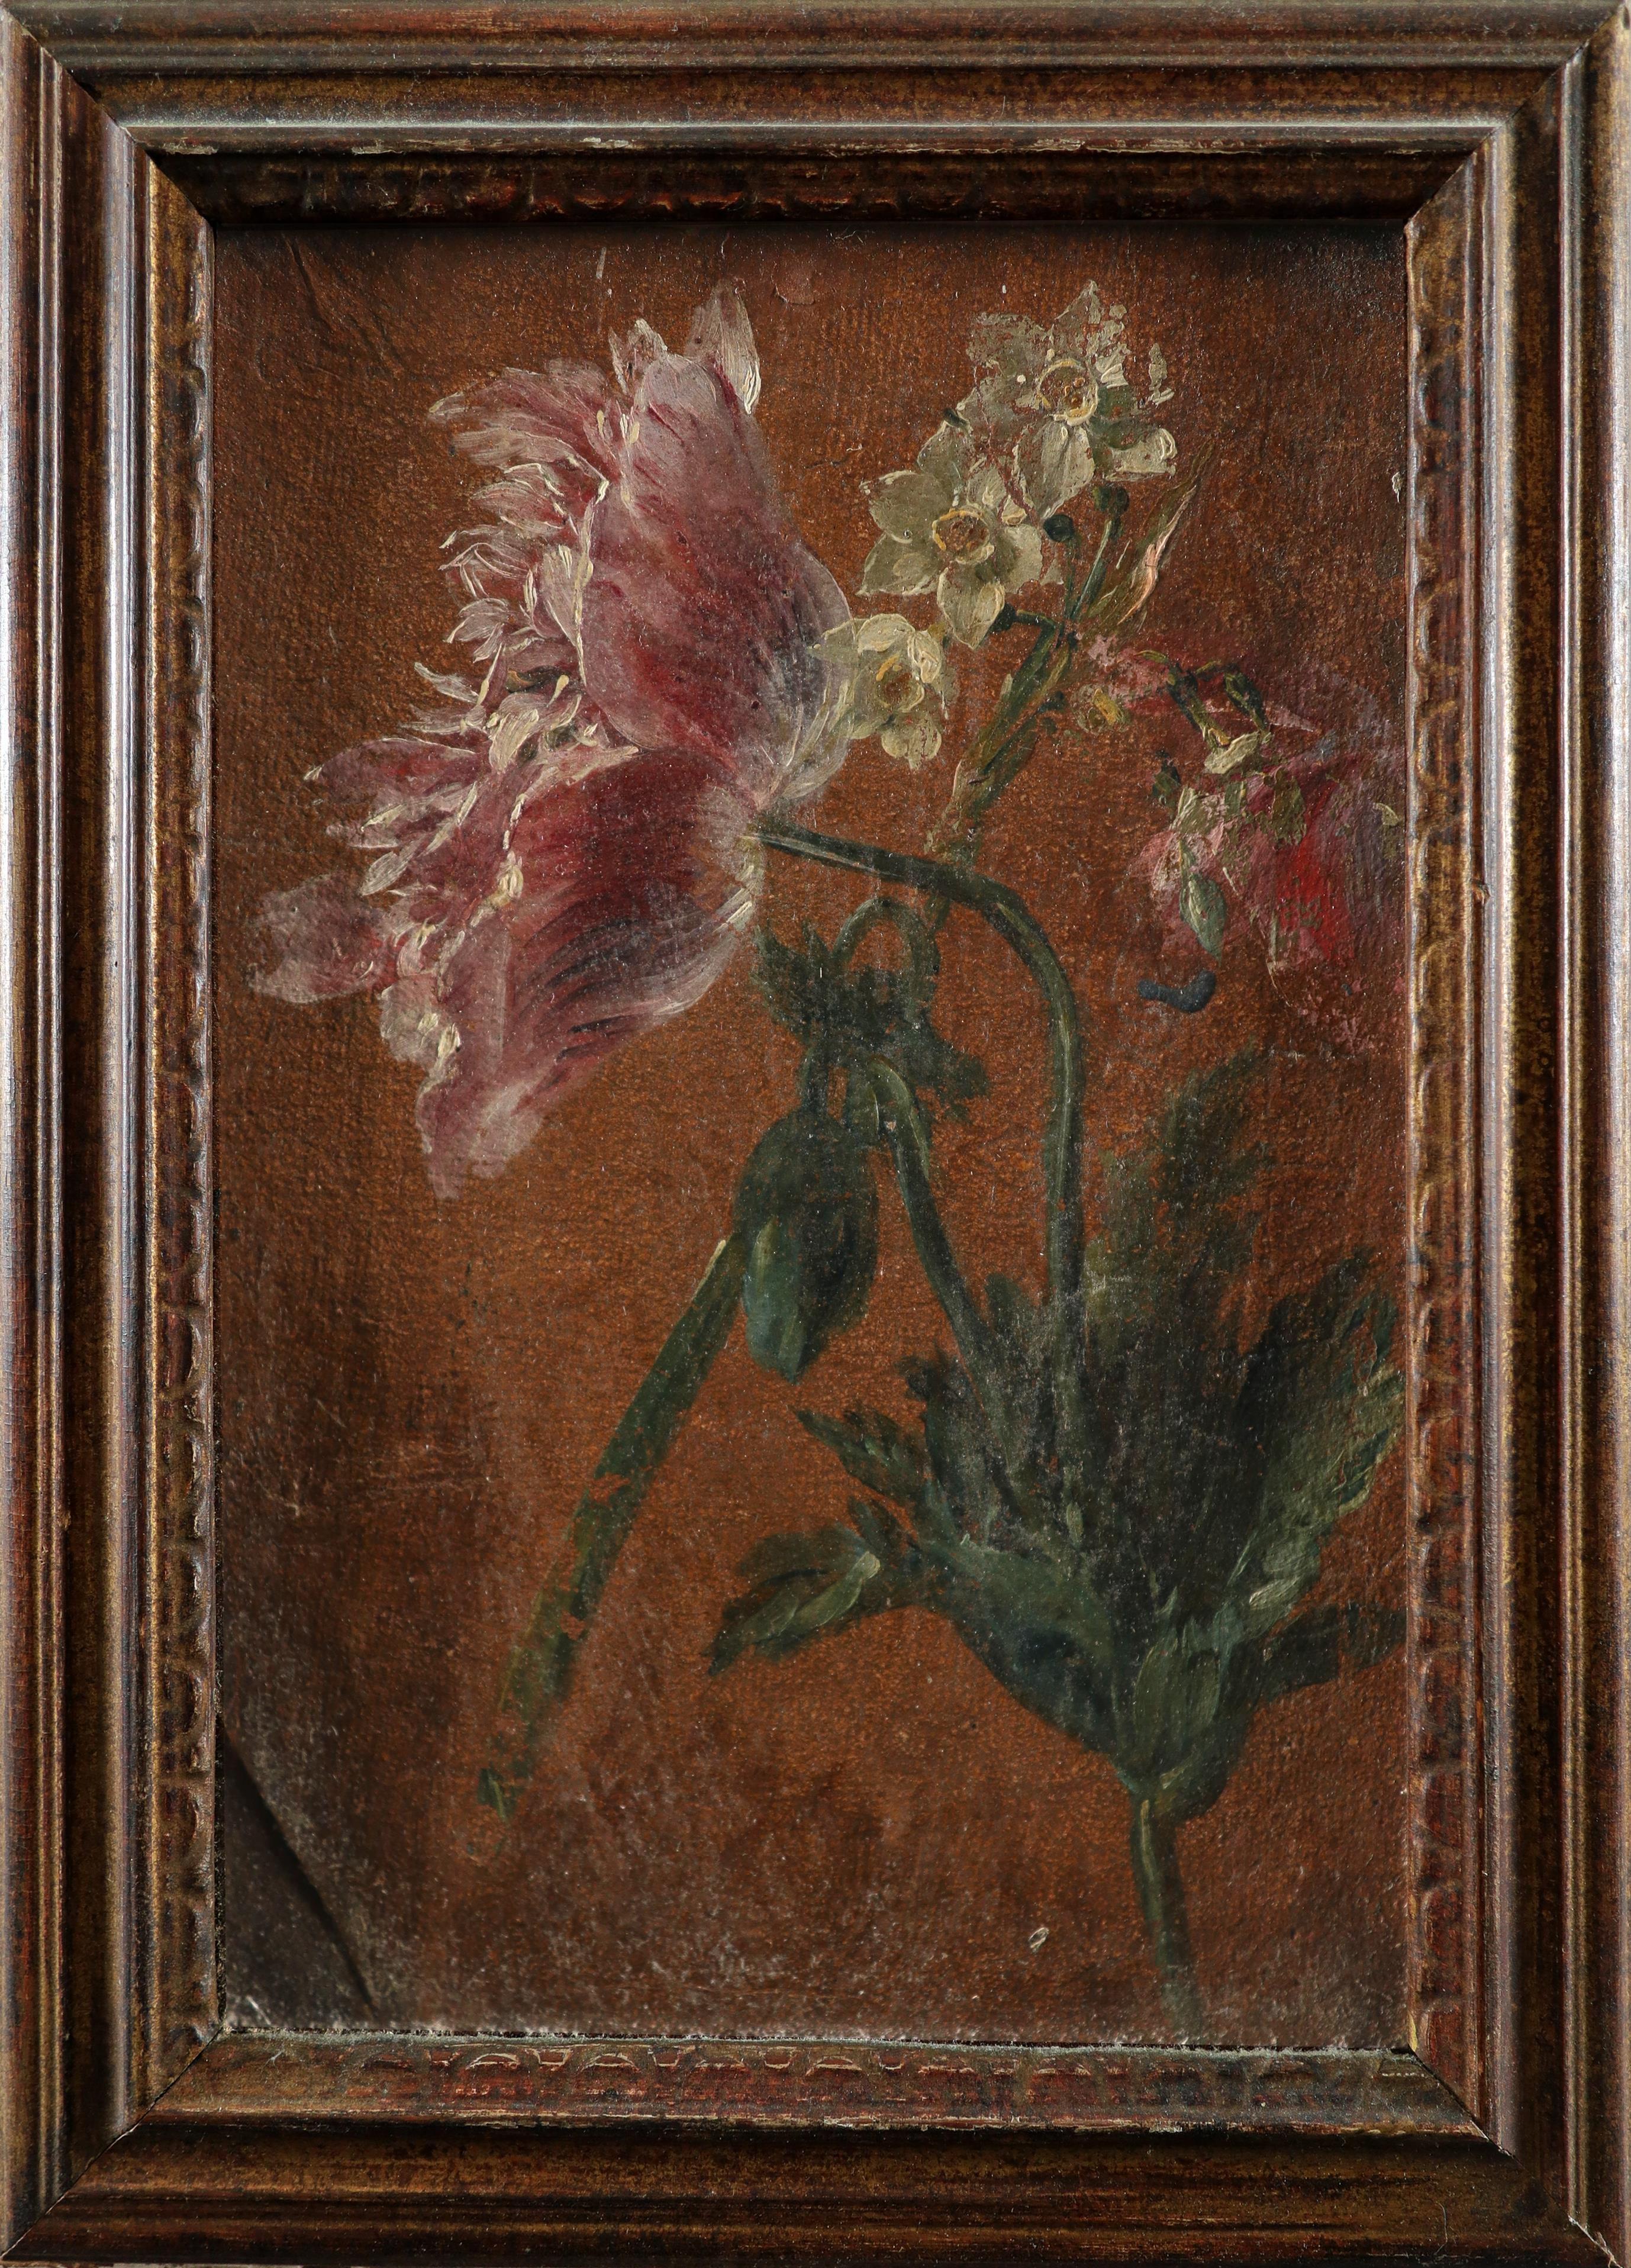 Dutch School 18th Century Study of lillies; Study of peonies A pair, both oil on canvas Each 26 x - Image 5 of 6